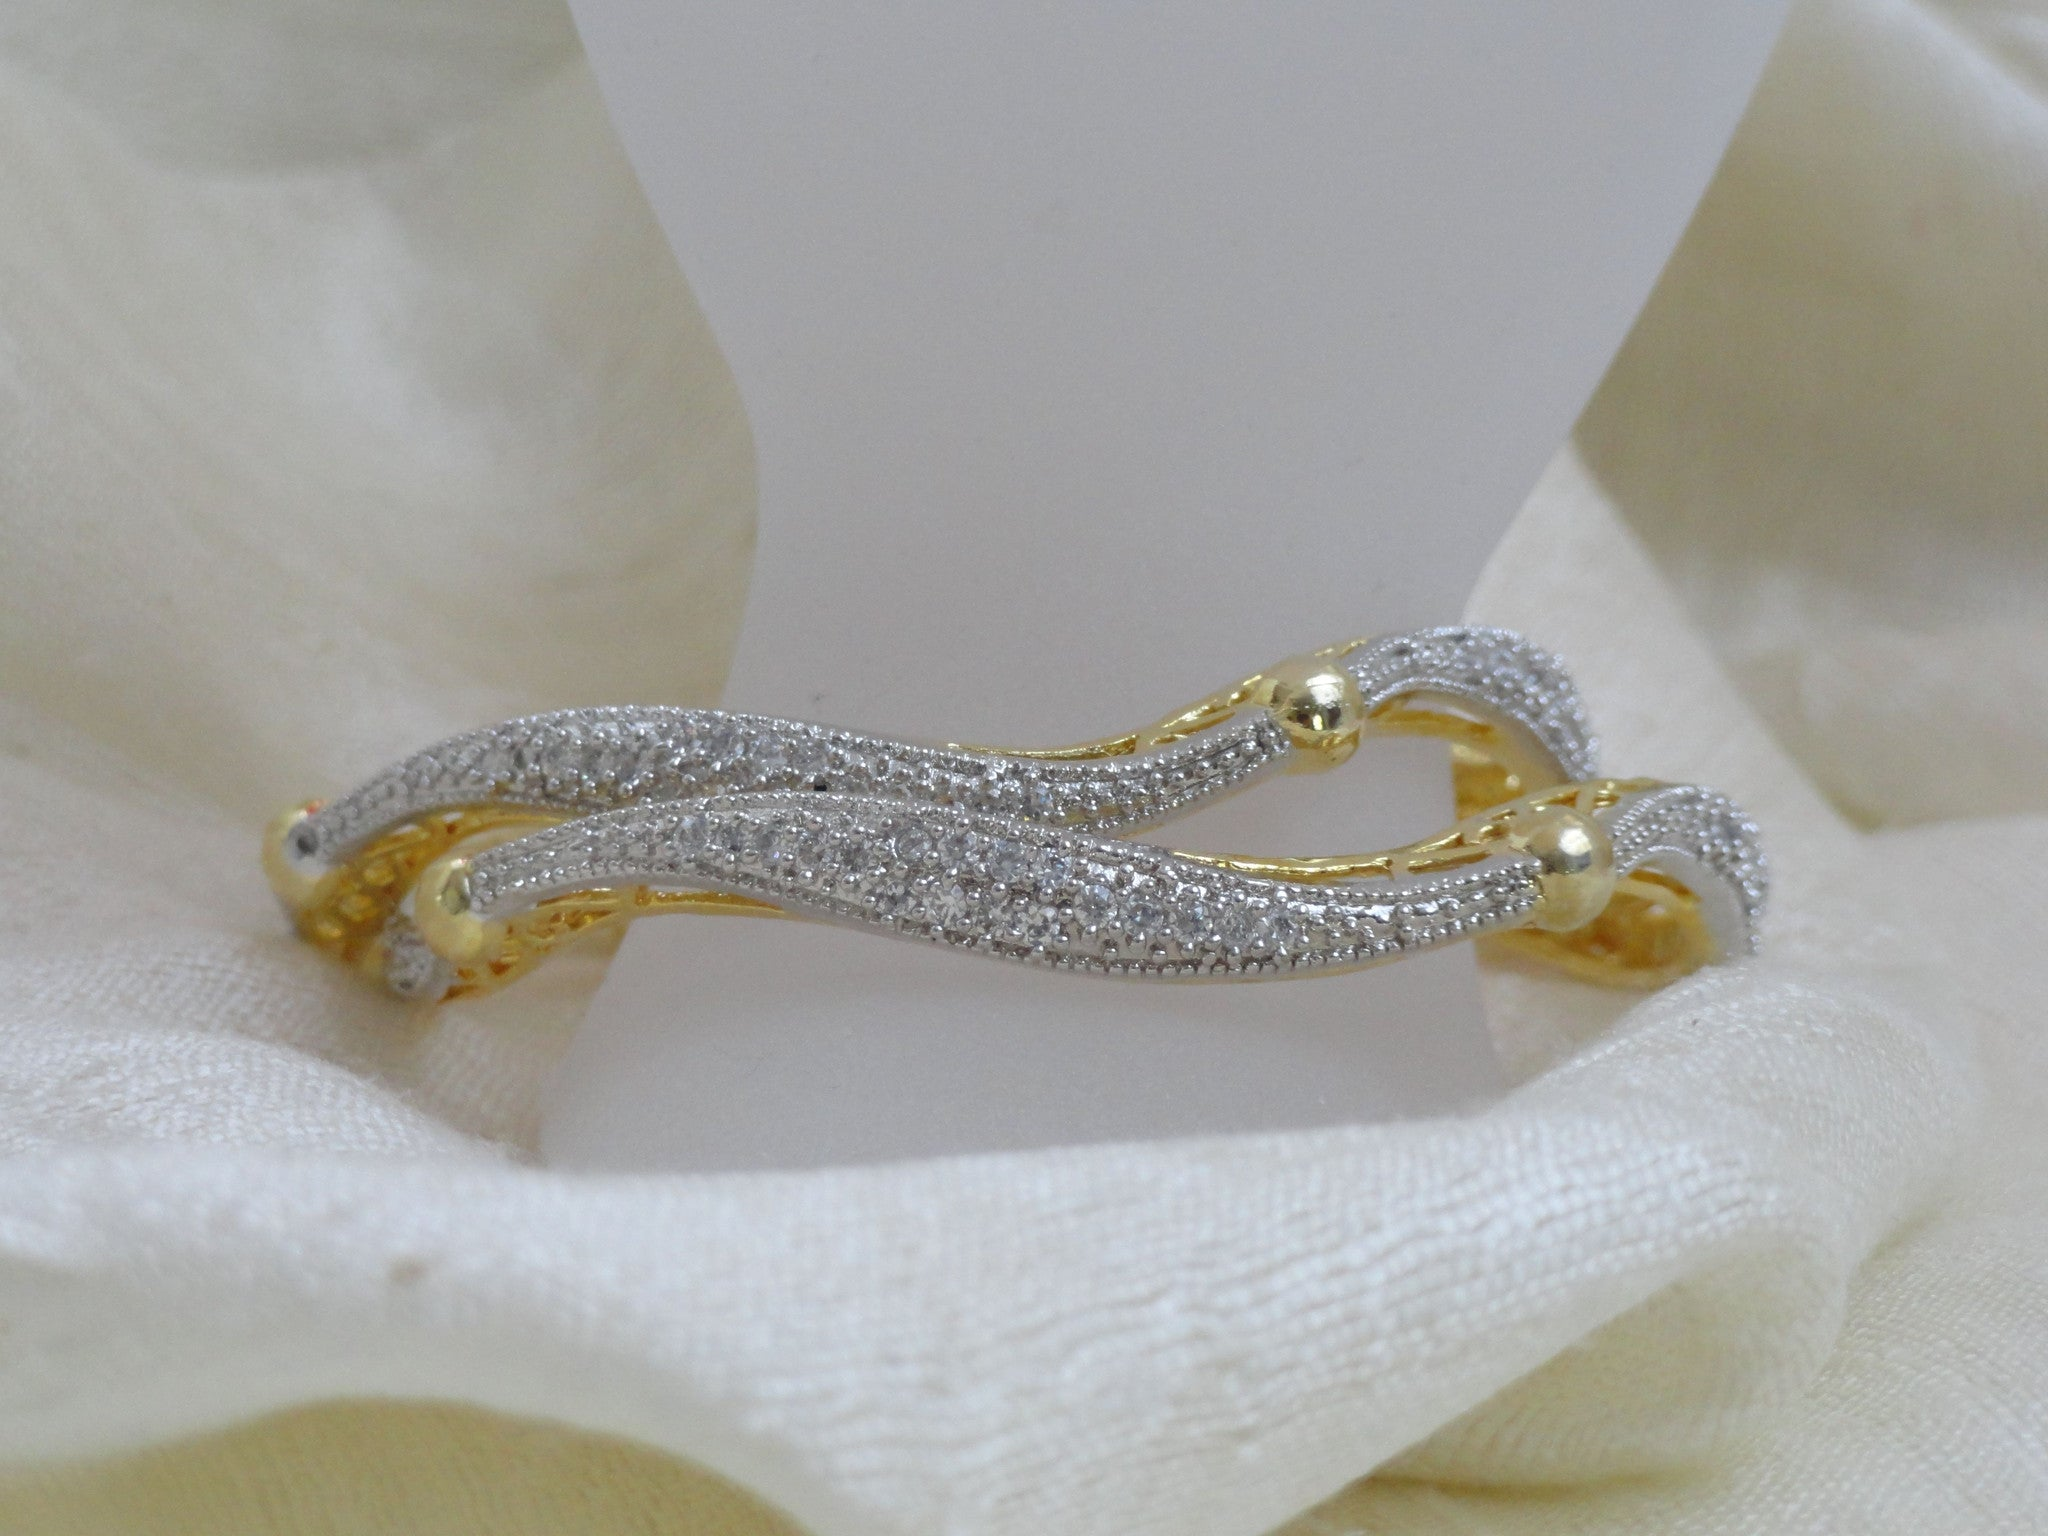 categories with bangle bracelet bangles caroline jewelry in scott kendra gold default bracelets mary lg stones